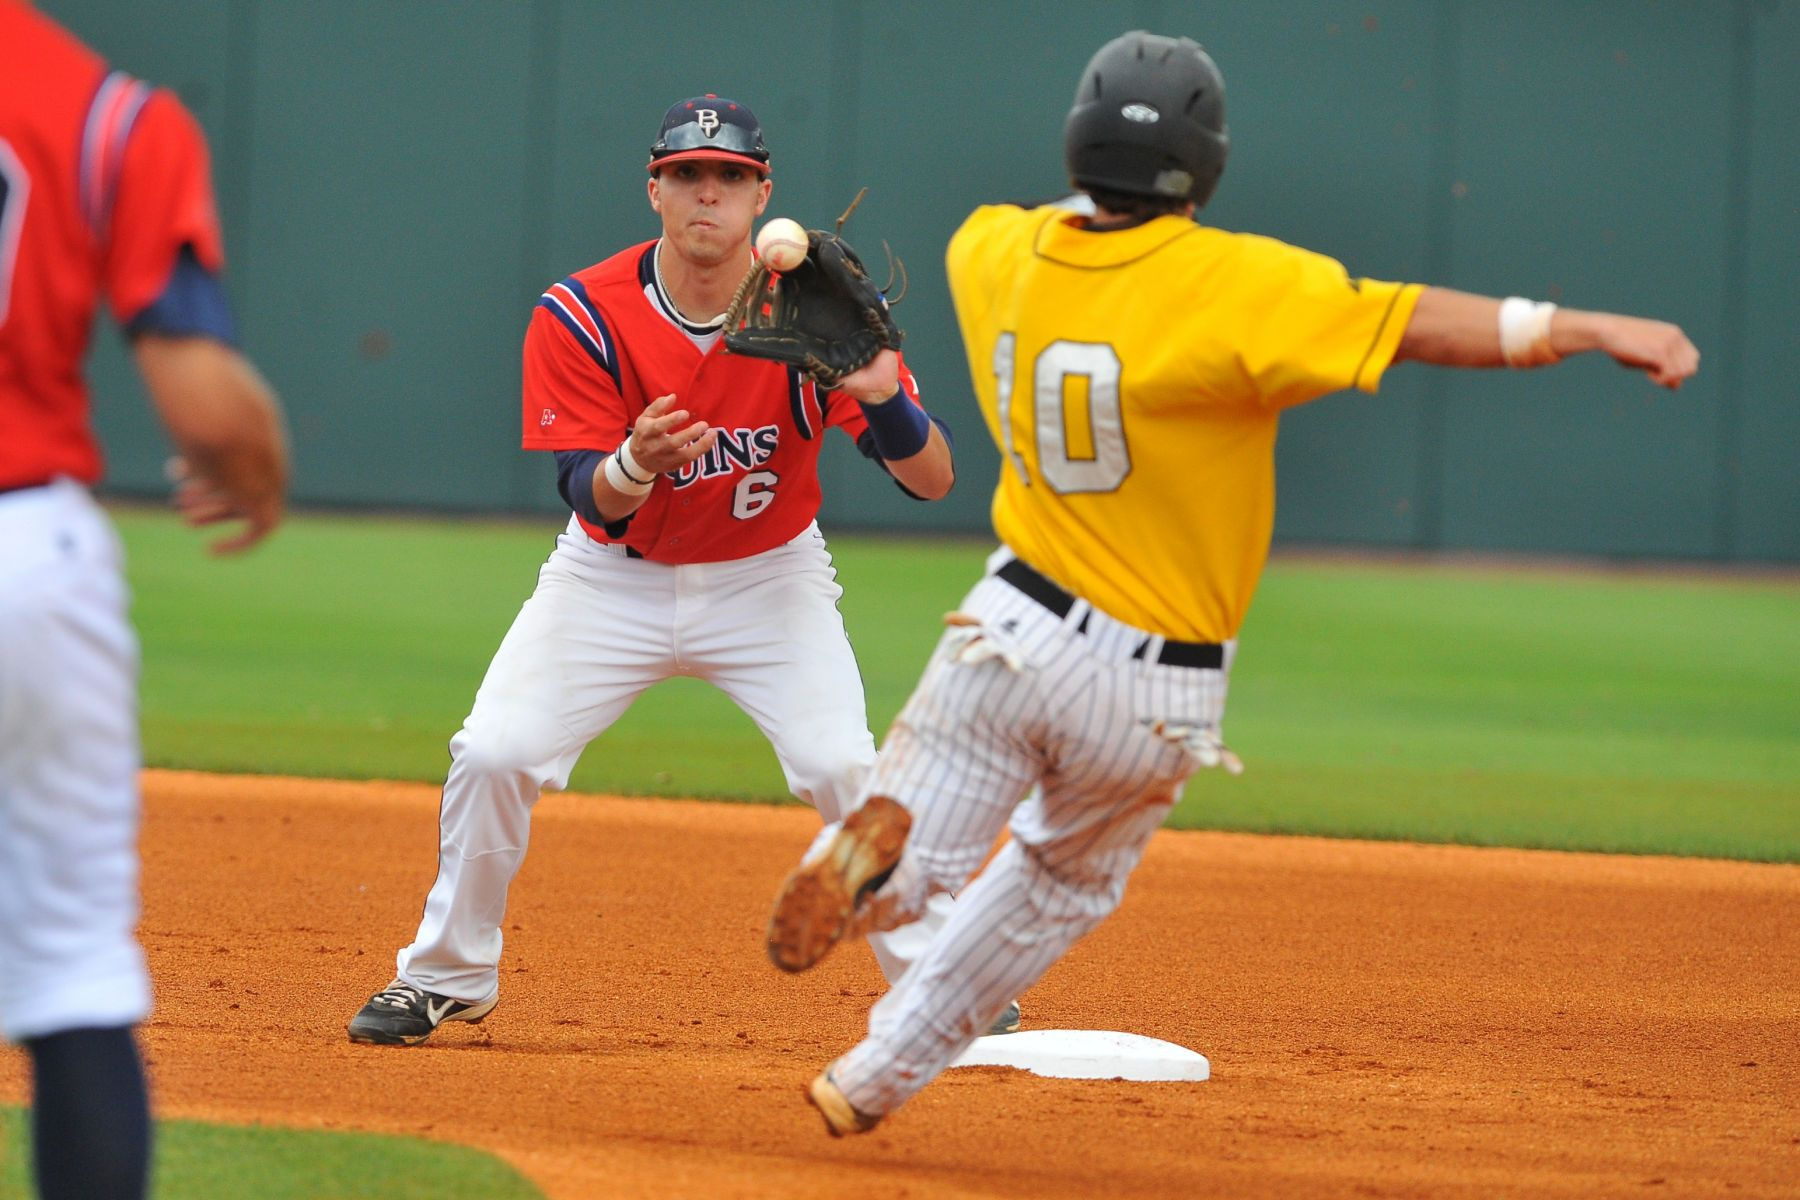 NCAA BASEBALL: Belmont vs. Kennesaw State